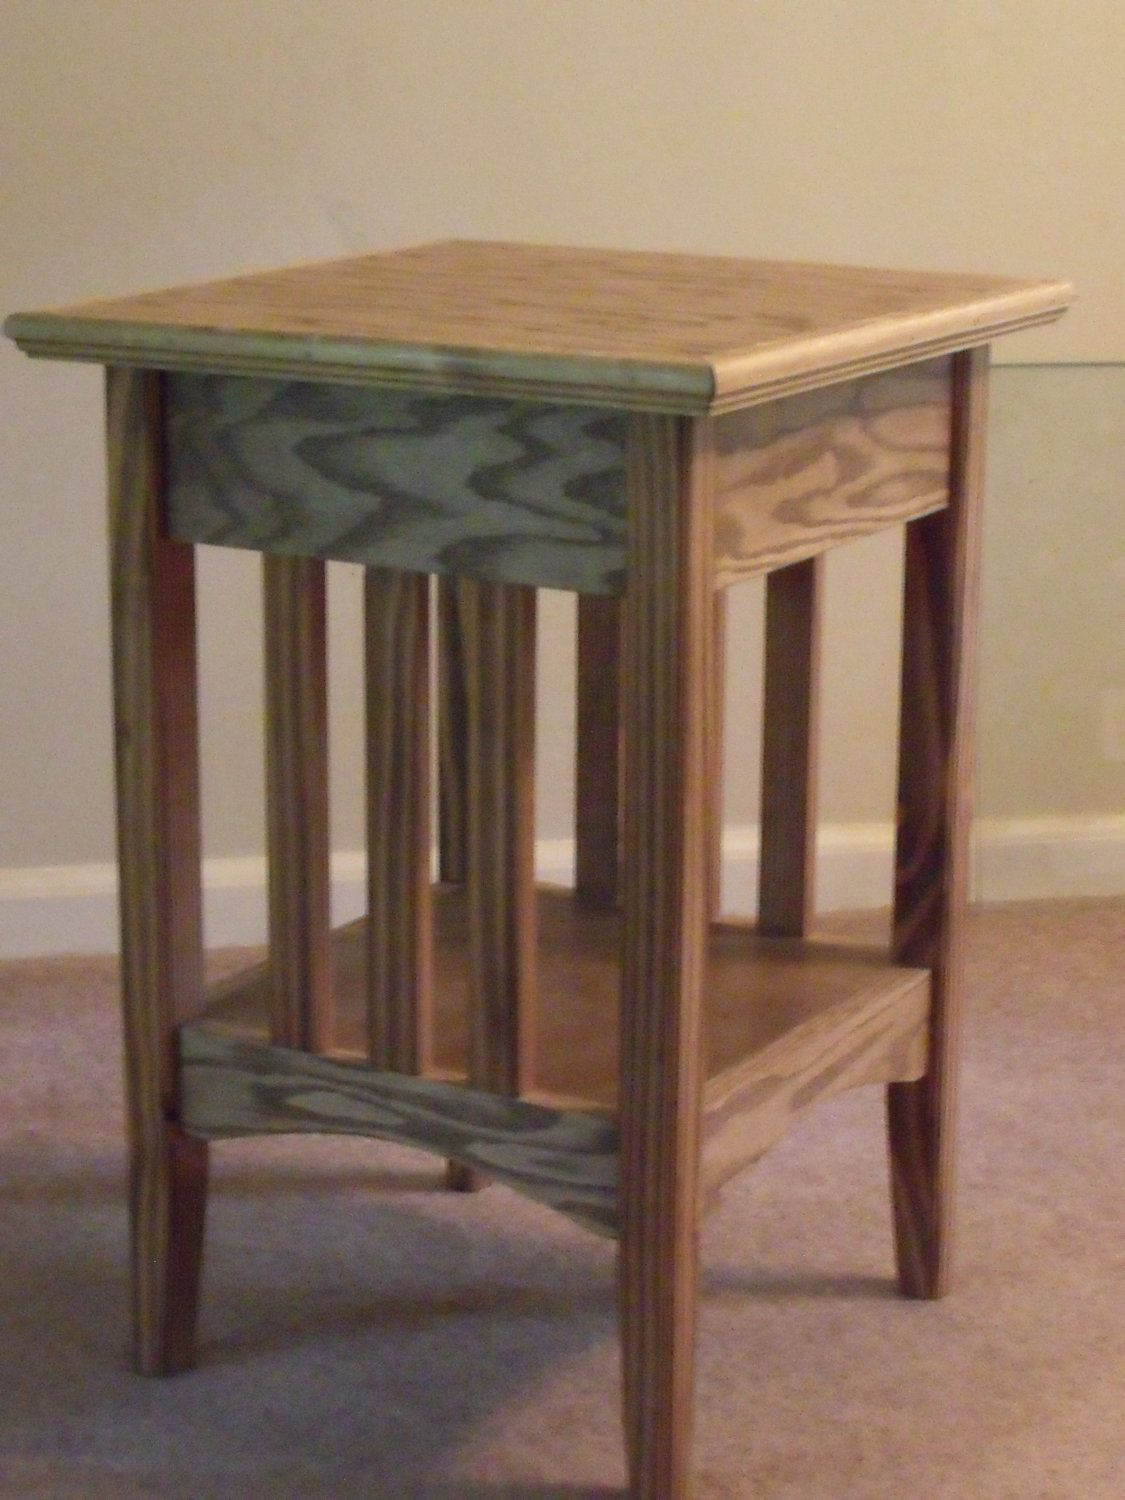 Mission Style End Table Walnut Stained Urathaned By Woodncrafter 60 00 Mission Style End Tables End Tables Table